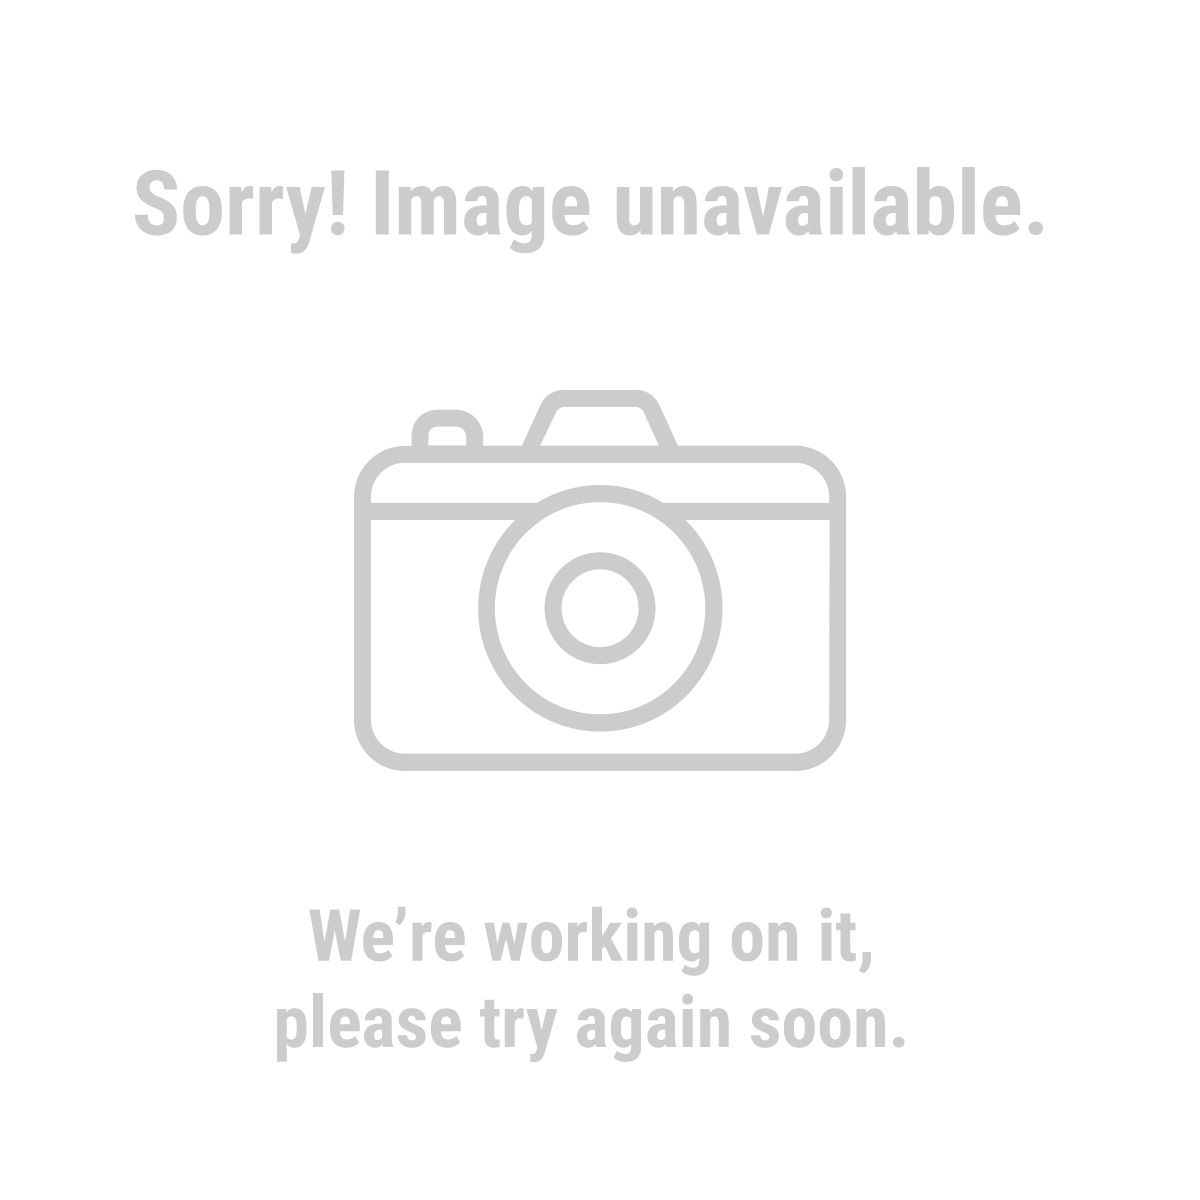 Haul-Master 61956 1 in. x 8 ft. Camouflage Ratcheting Tie Downs 4 Pc